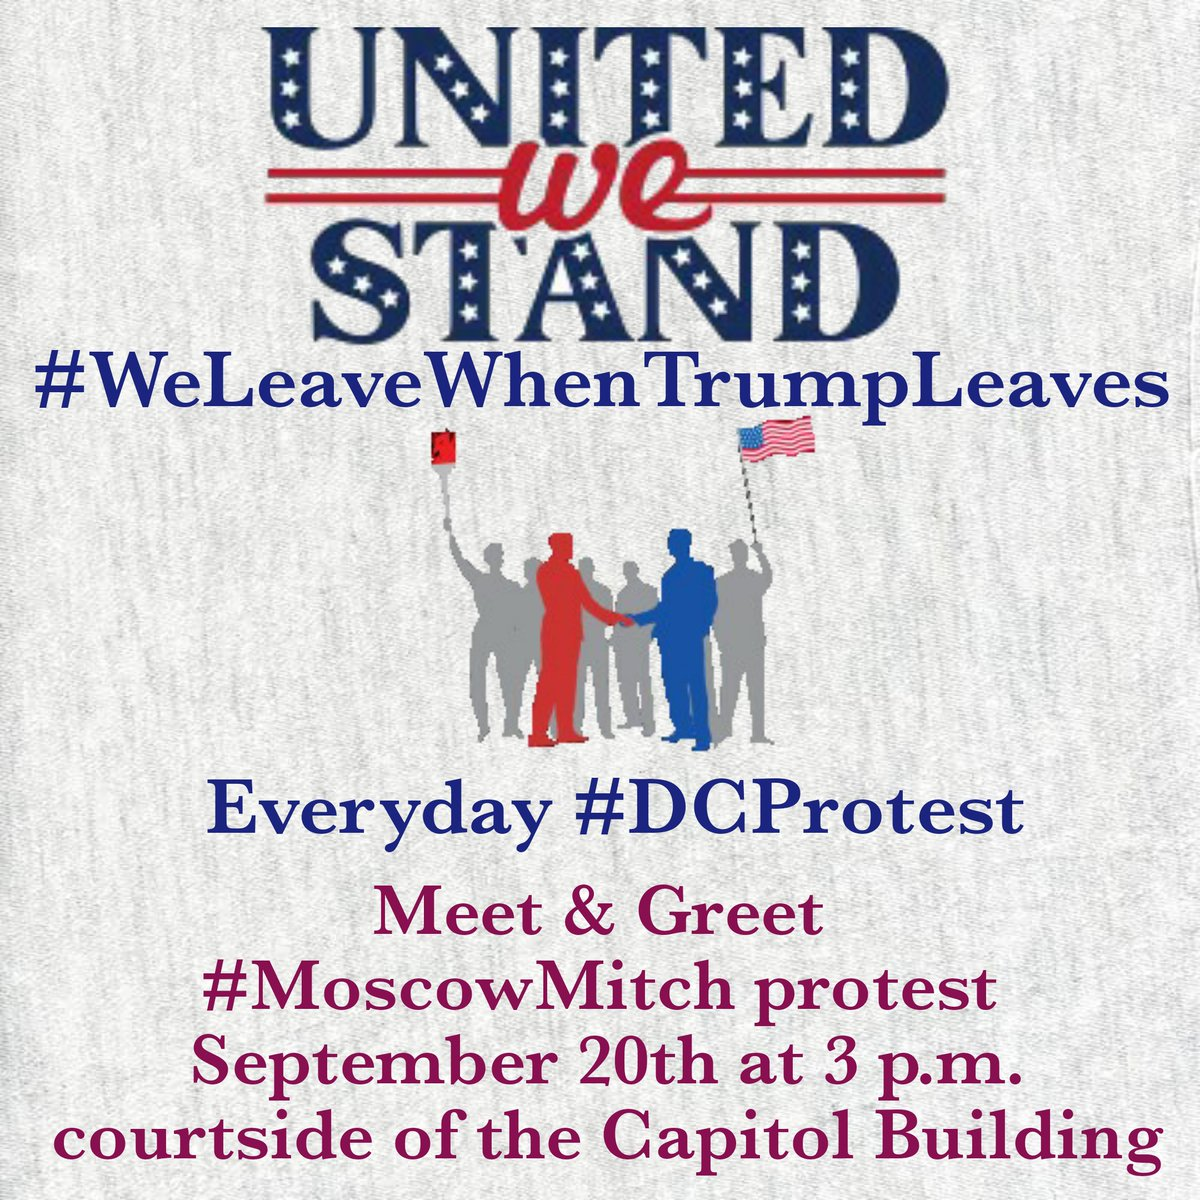 Resisters I kinda miss shouting out ppl so Ive decided that during the day Im going to protest the hell out of it and at night Im going to do some shoutouts. @Scoot4002 is also looking to connect resisters in groups parties so anyone that would like to connect comment below